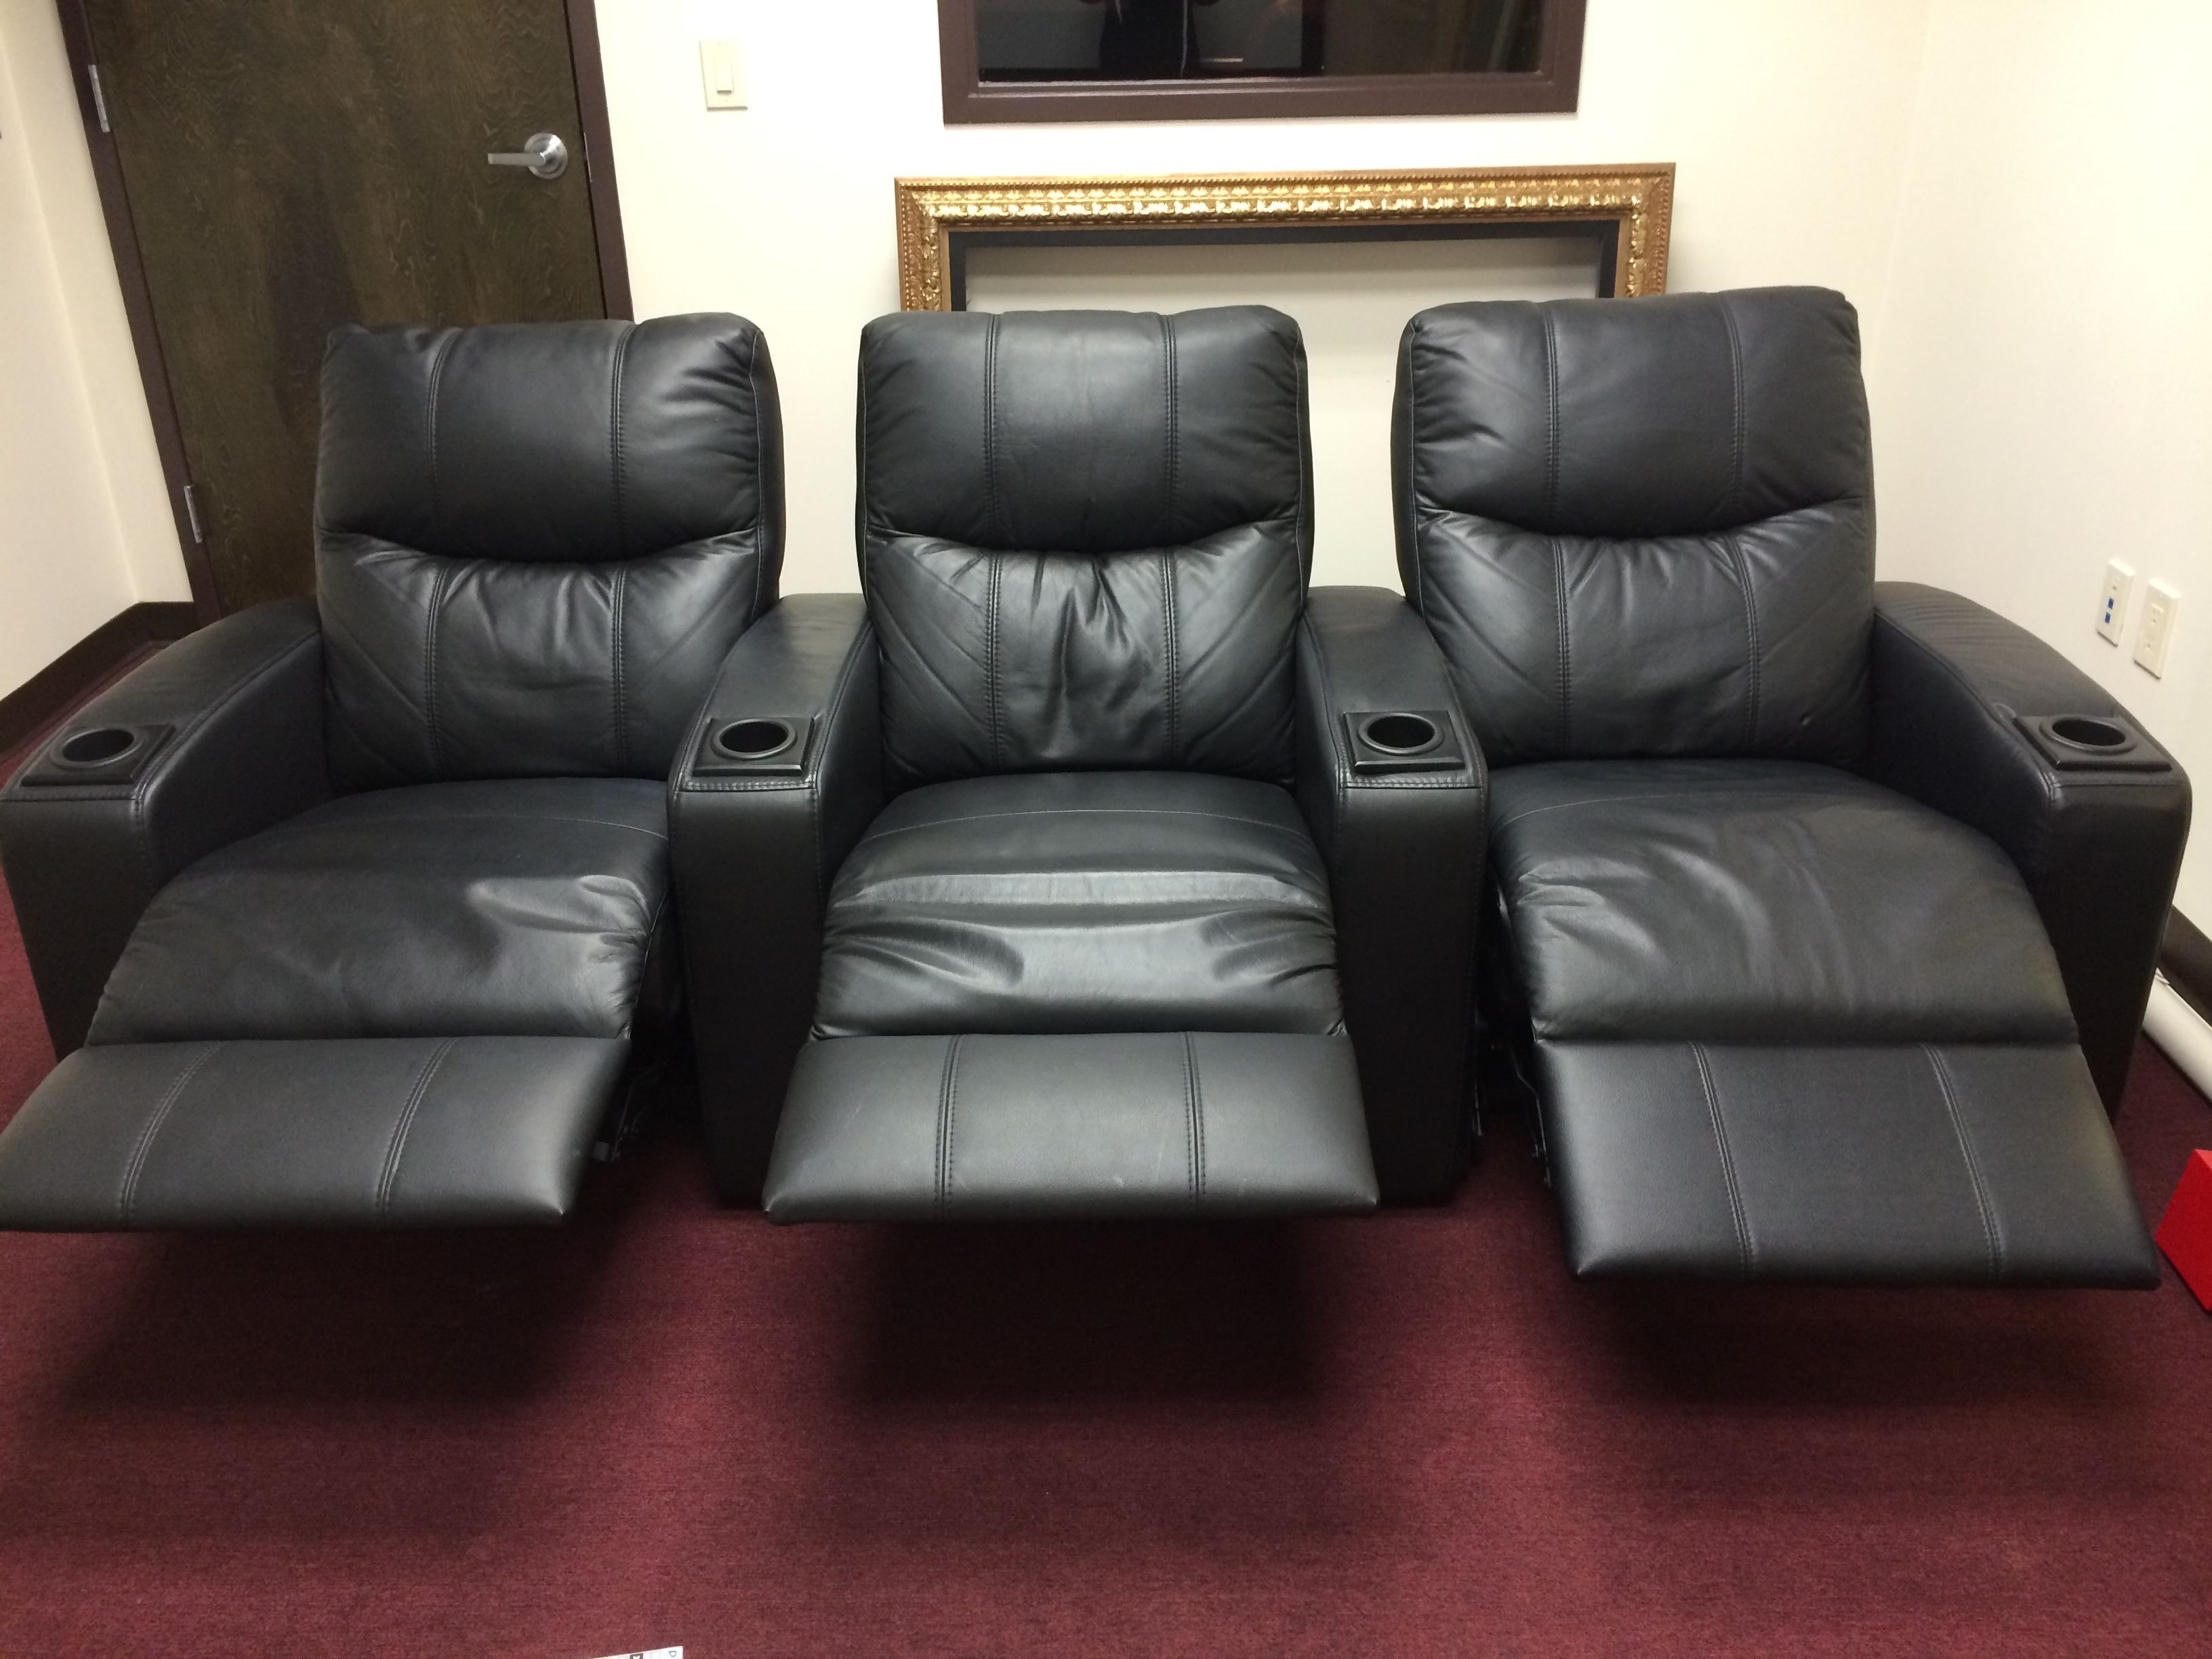 "Row of 3 Black, Leather Theater Chairs In great condition- one tiny little tear on bottom corner; easily hidden.   Made by Lovan; manual recline.   Cup holders for each seat.  Was $3695 new, SALE price $1200.   Dimensions:   94"" W x 39"" H x 38.5"" D Seated (53"" D; reclined)"